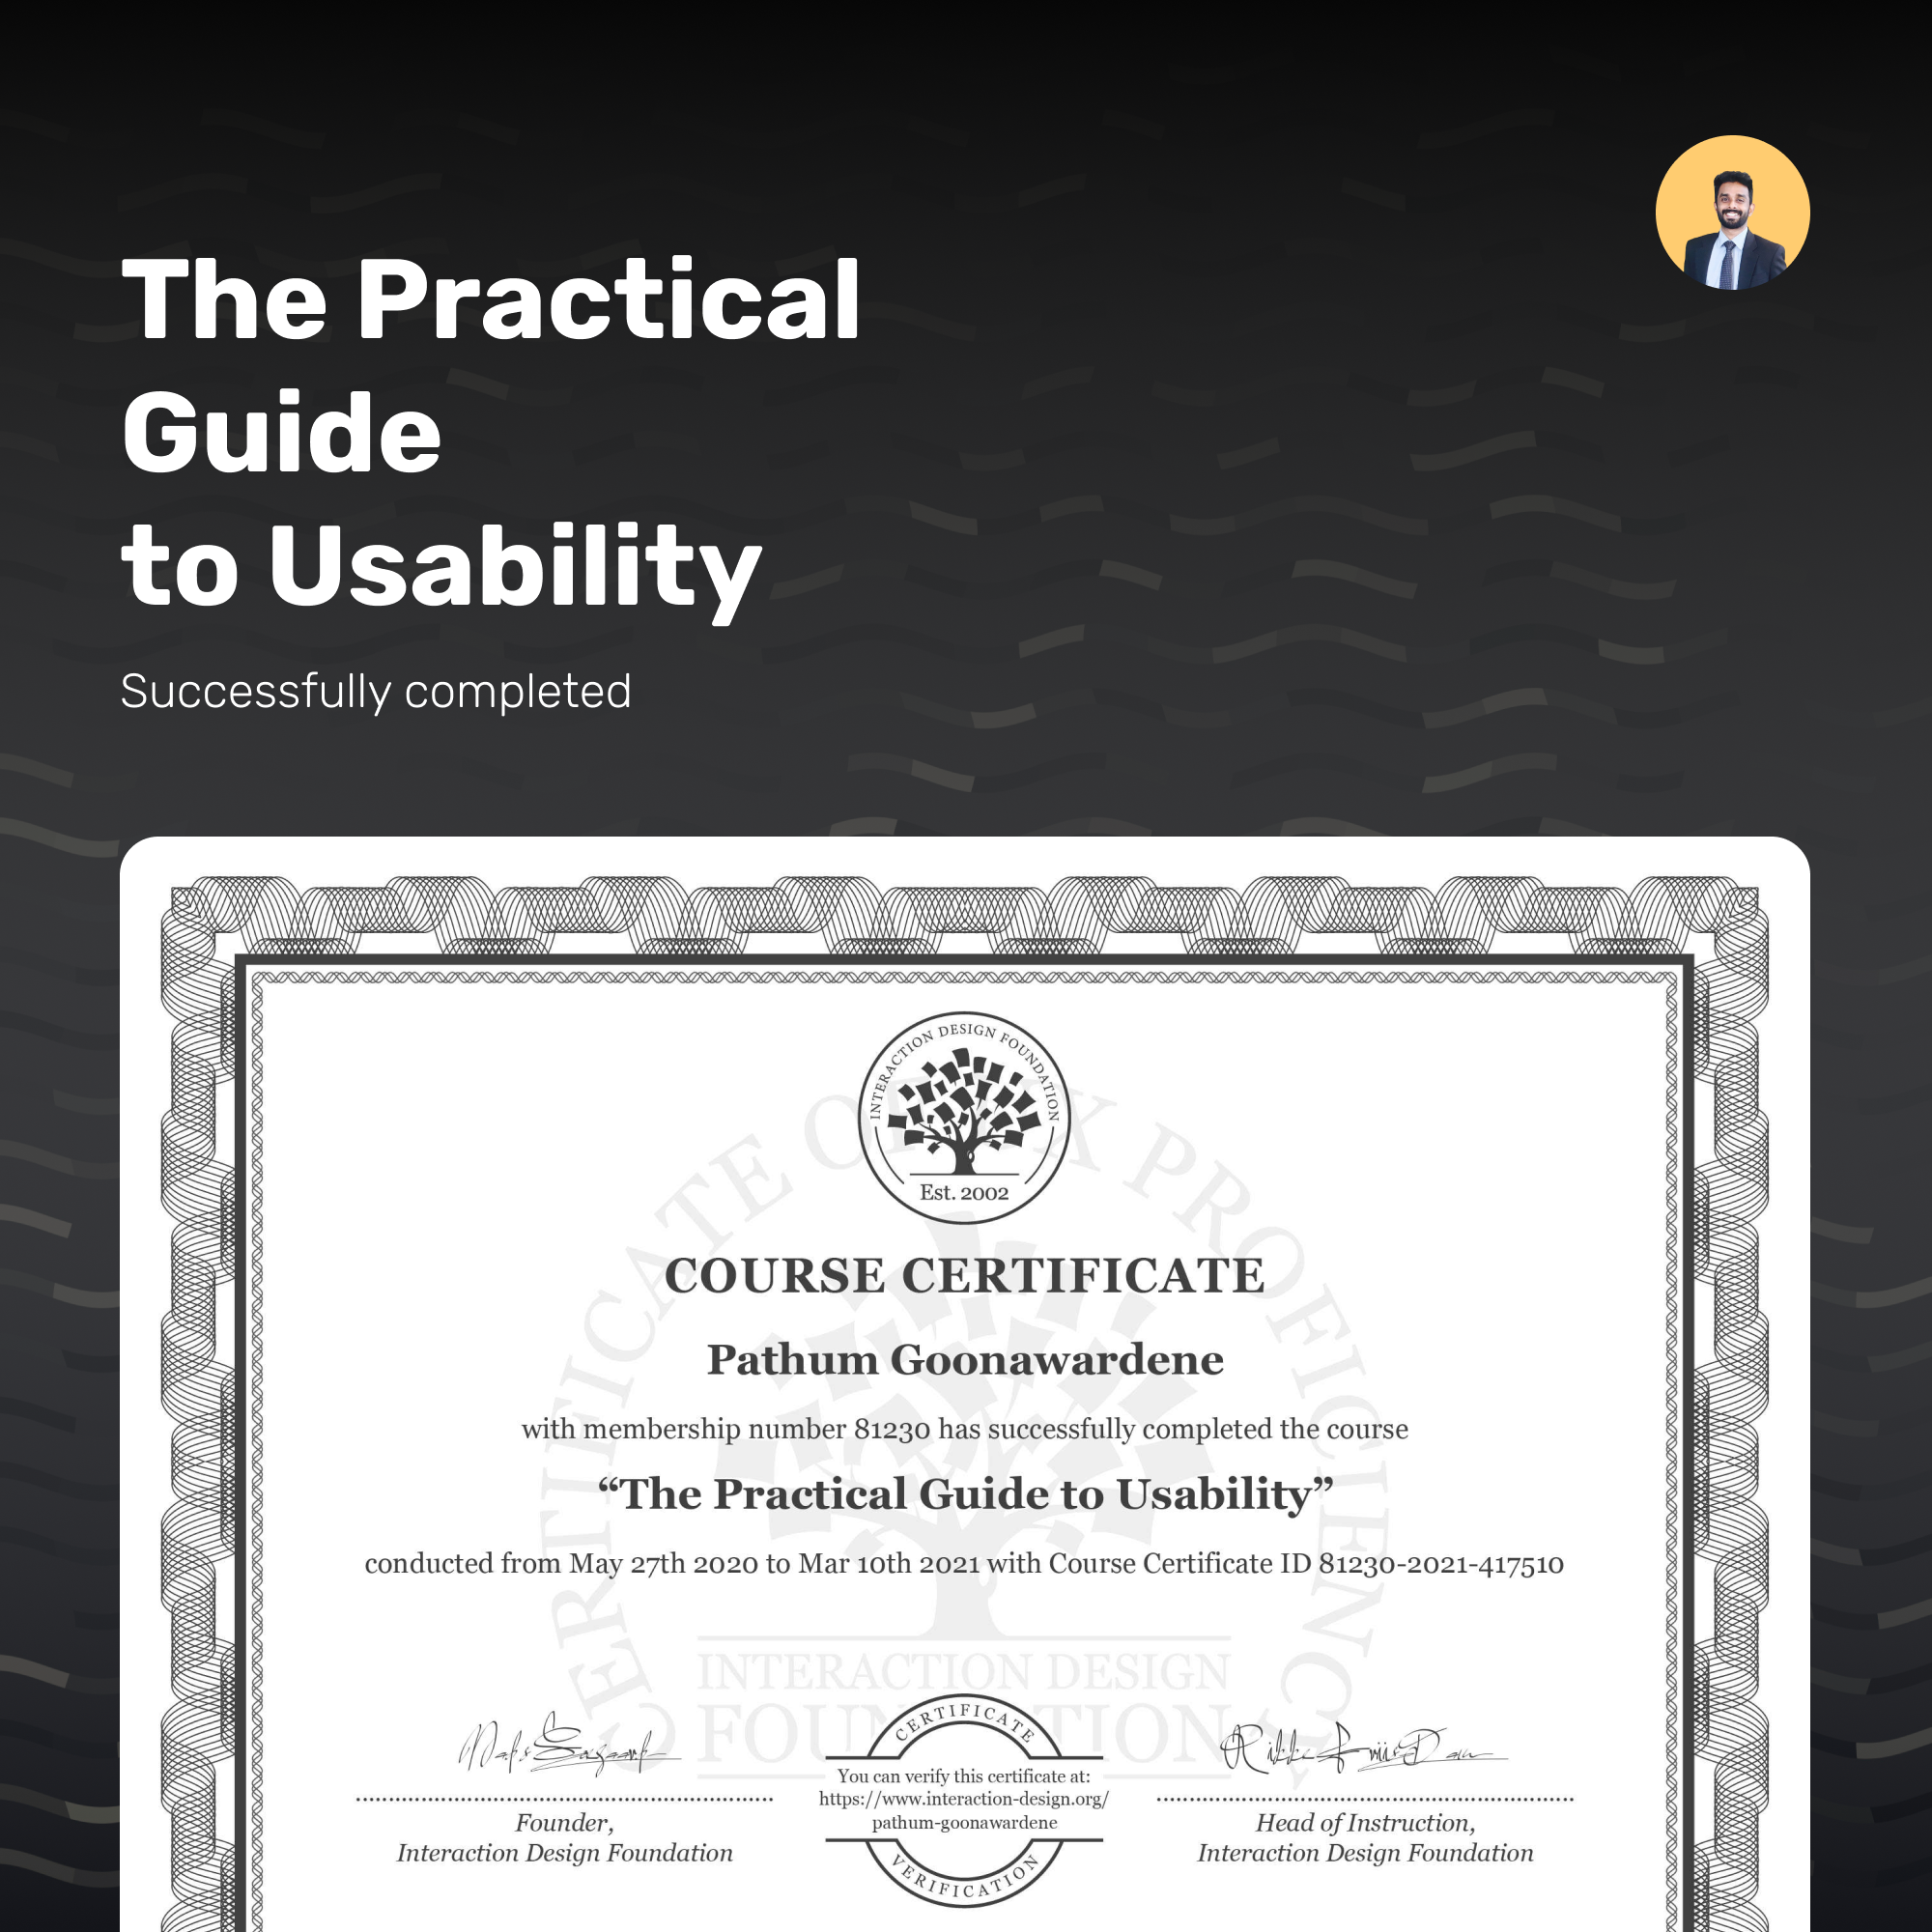 The Practical Guide to Usability